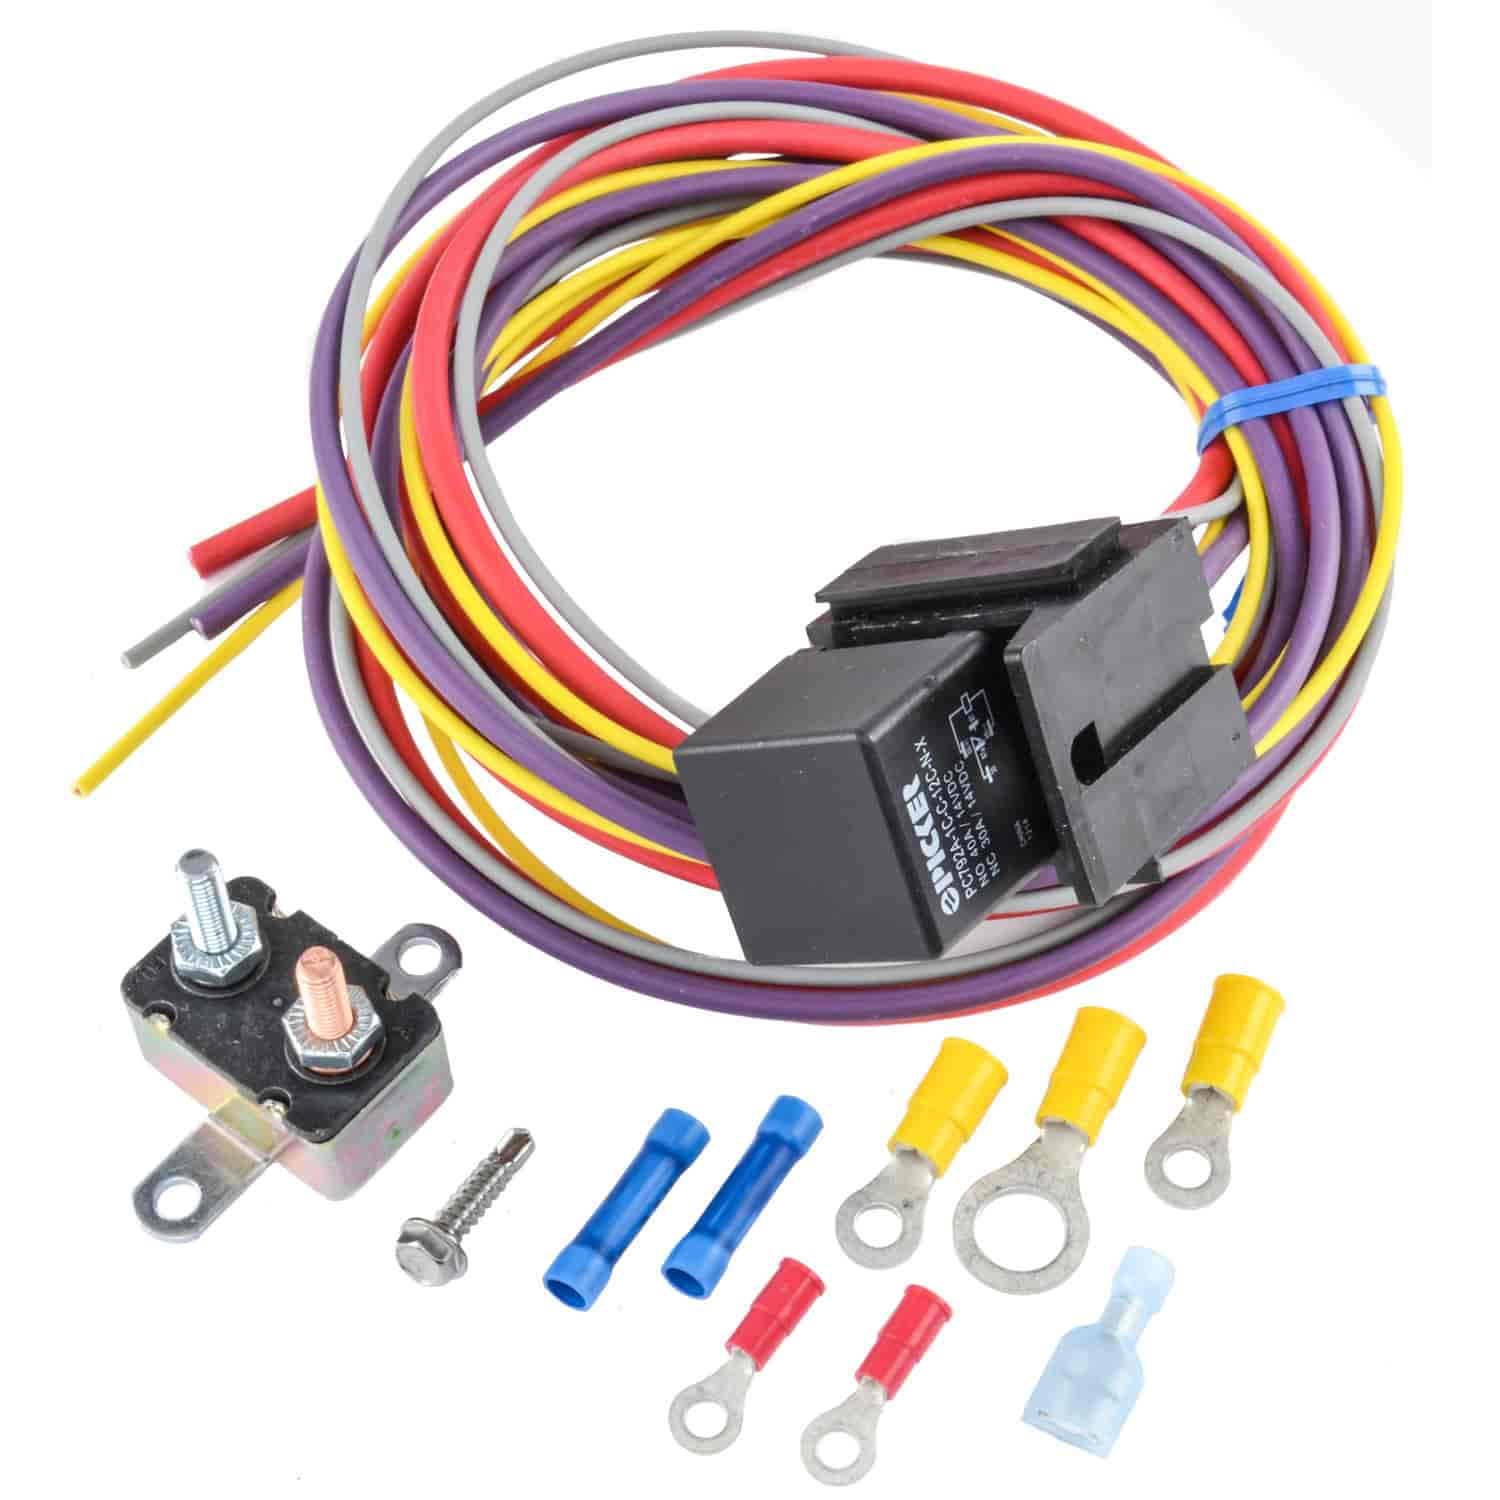 555 10559 jegs performance products 10559 manual controlled single fan jegs universal wiring harness at fashall.co